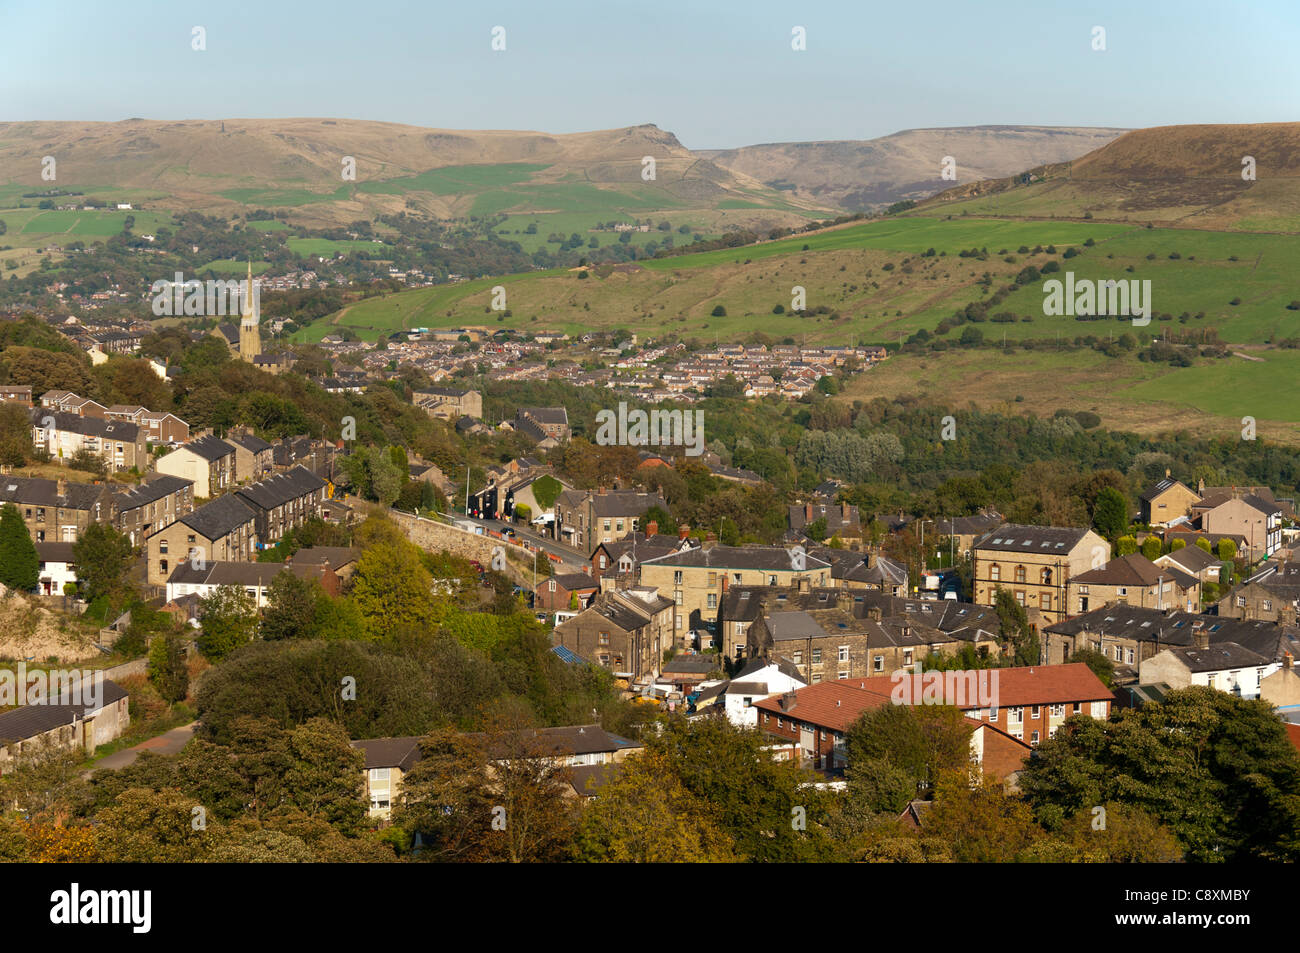 Mossley and the Tame Valley, looking toward the Saddleworth Moors.  Tameside, Greater Manchester, England, UK - Stock Image